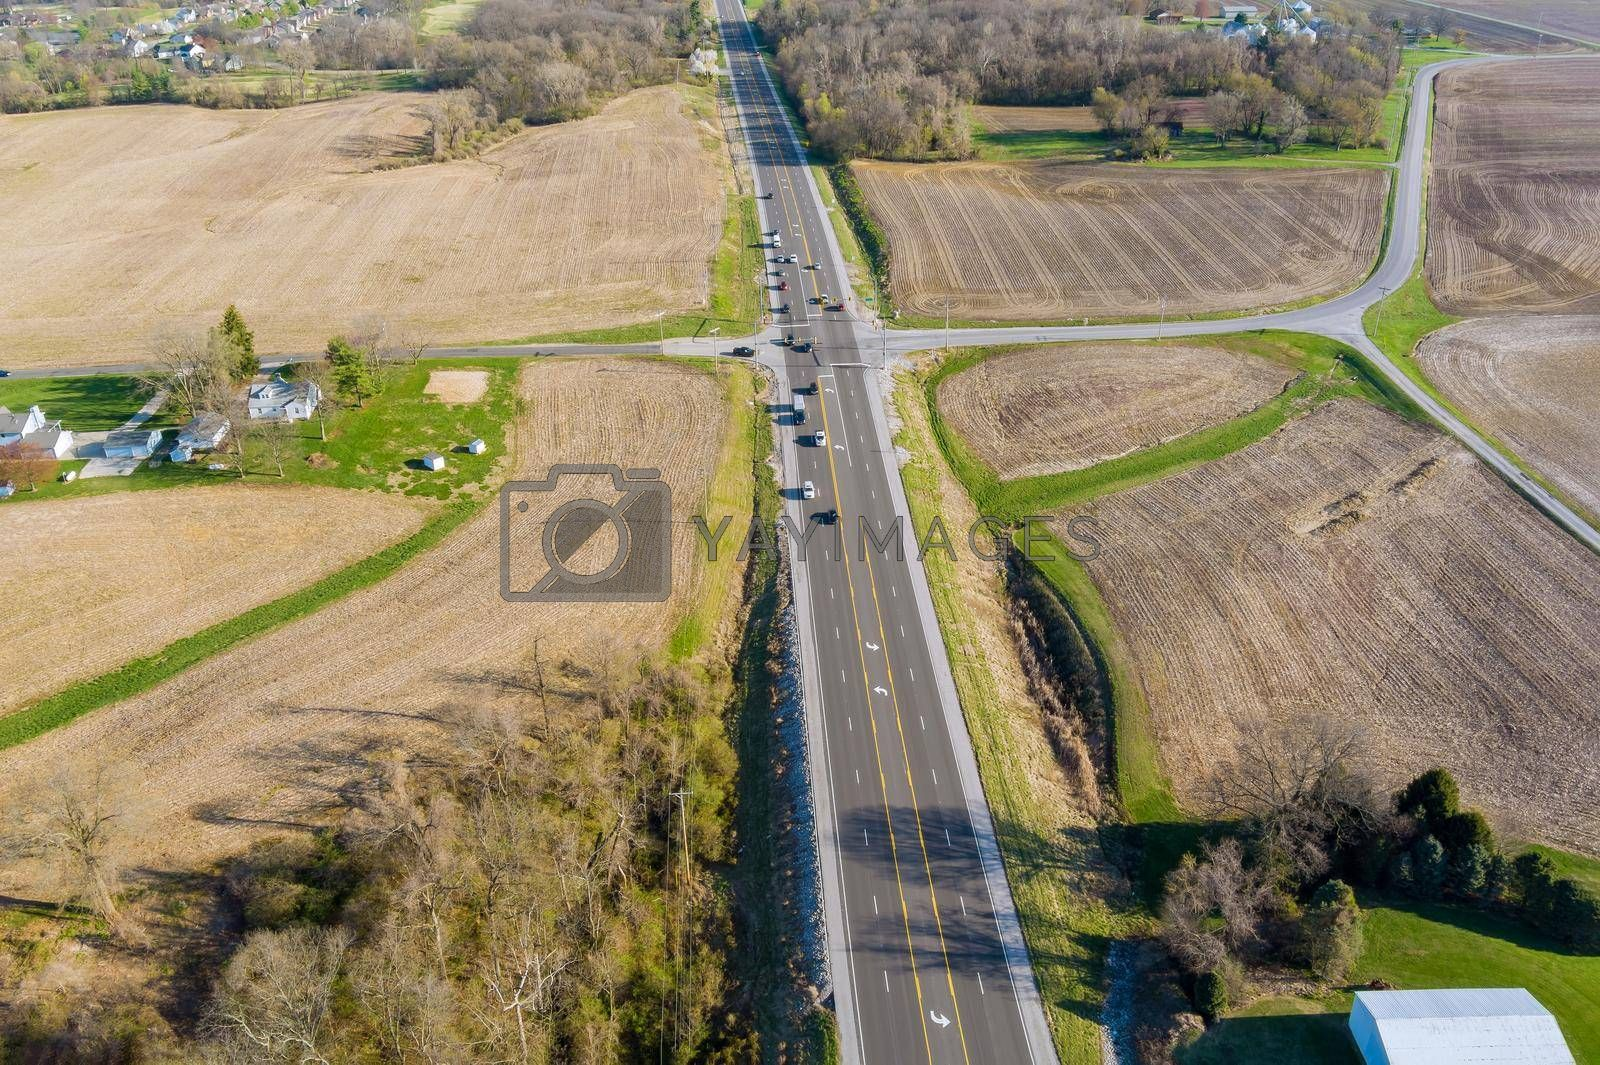 View of an aerial perspective a country asphalt road through agricultural fields, in the Caseyville Illinois on USA